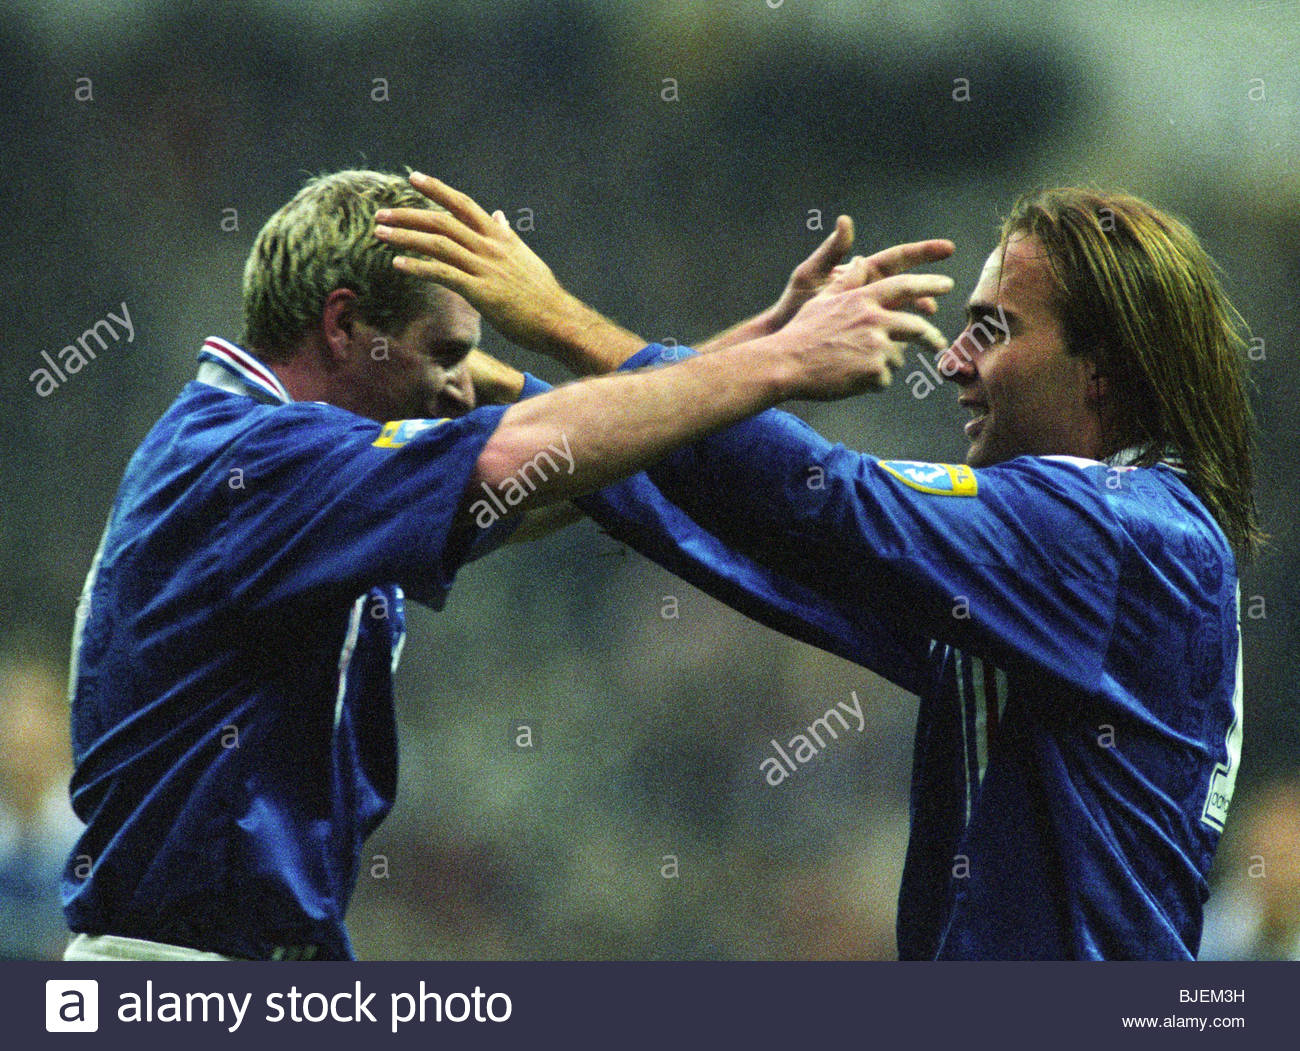 25/01/97 TENNENT'S SCOTTISH CUP 3RD RND RANGERS V ST JOHNSTONE (2-0) IBROX - GLASGOW Sebastian Rozental (right) - Stock Image